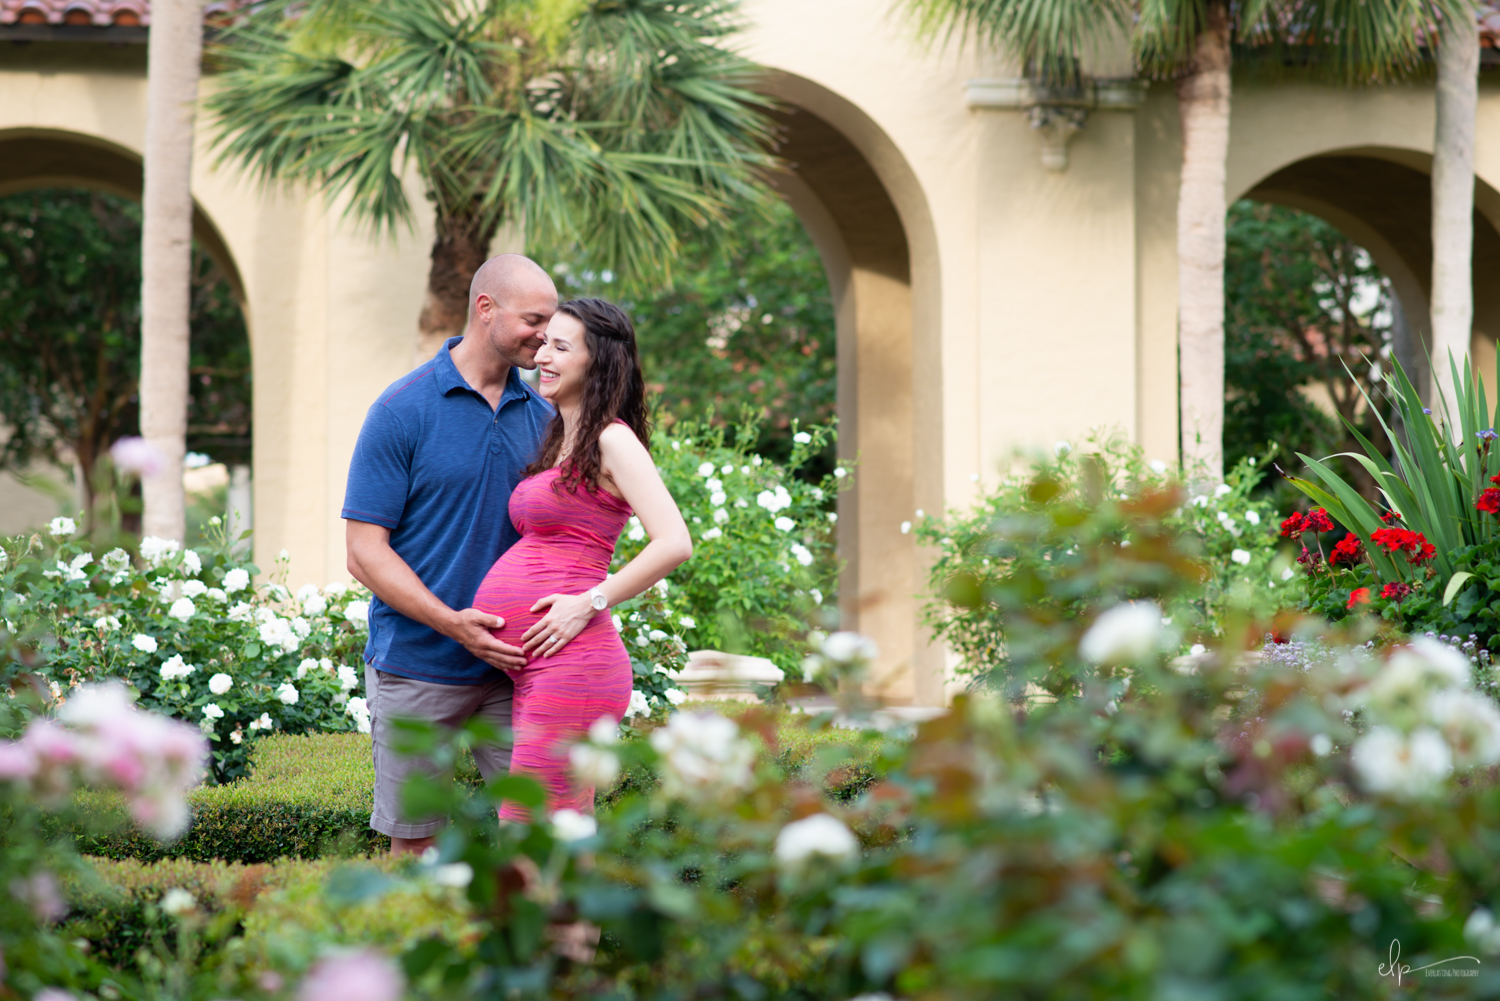 Portrait session locations at Rollins College